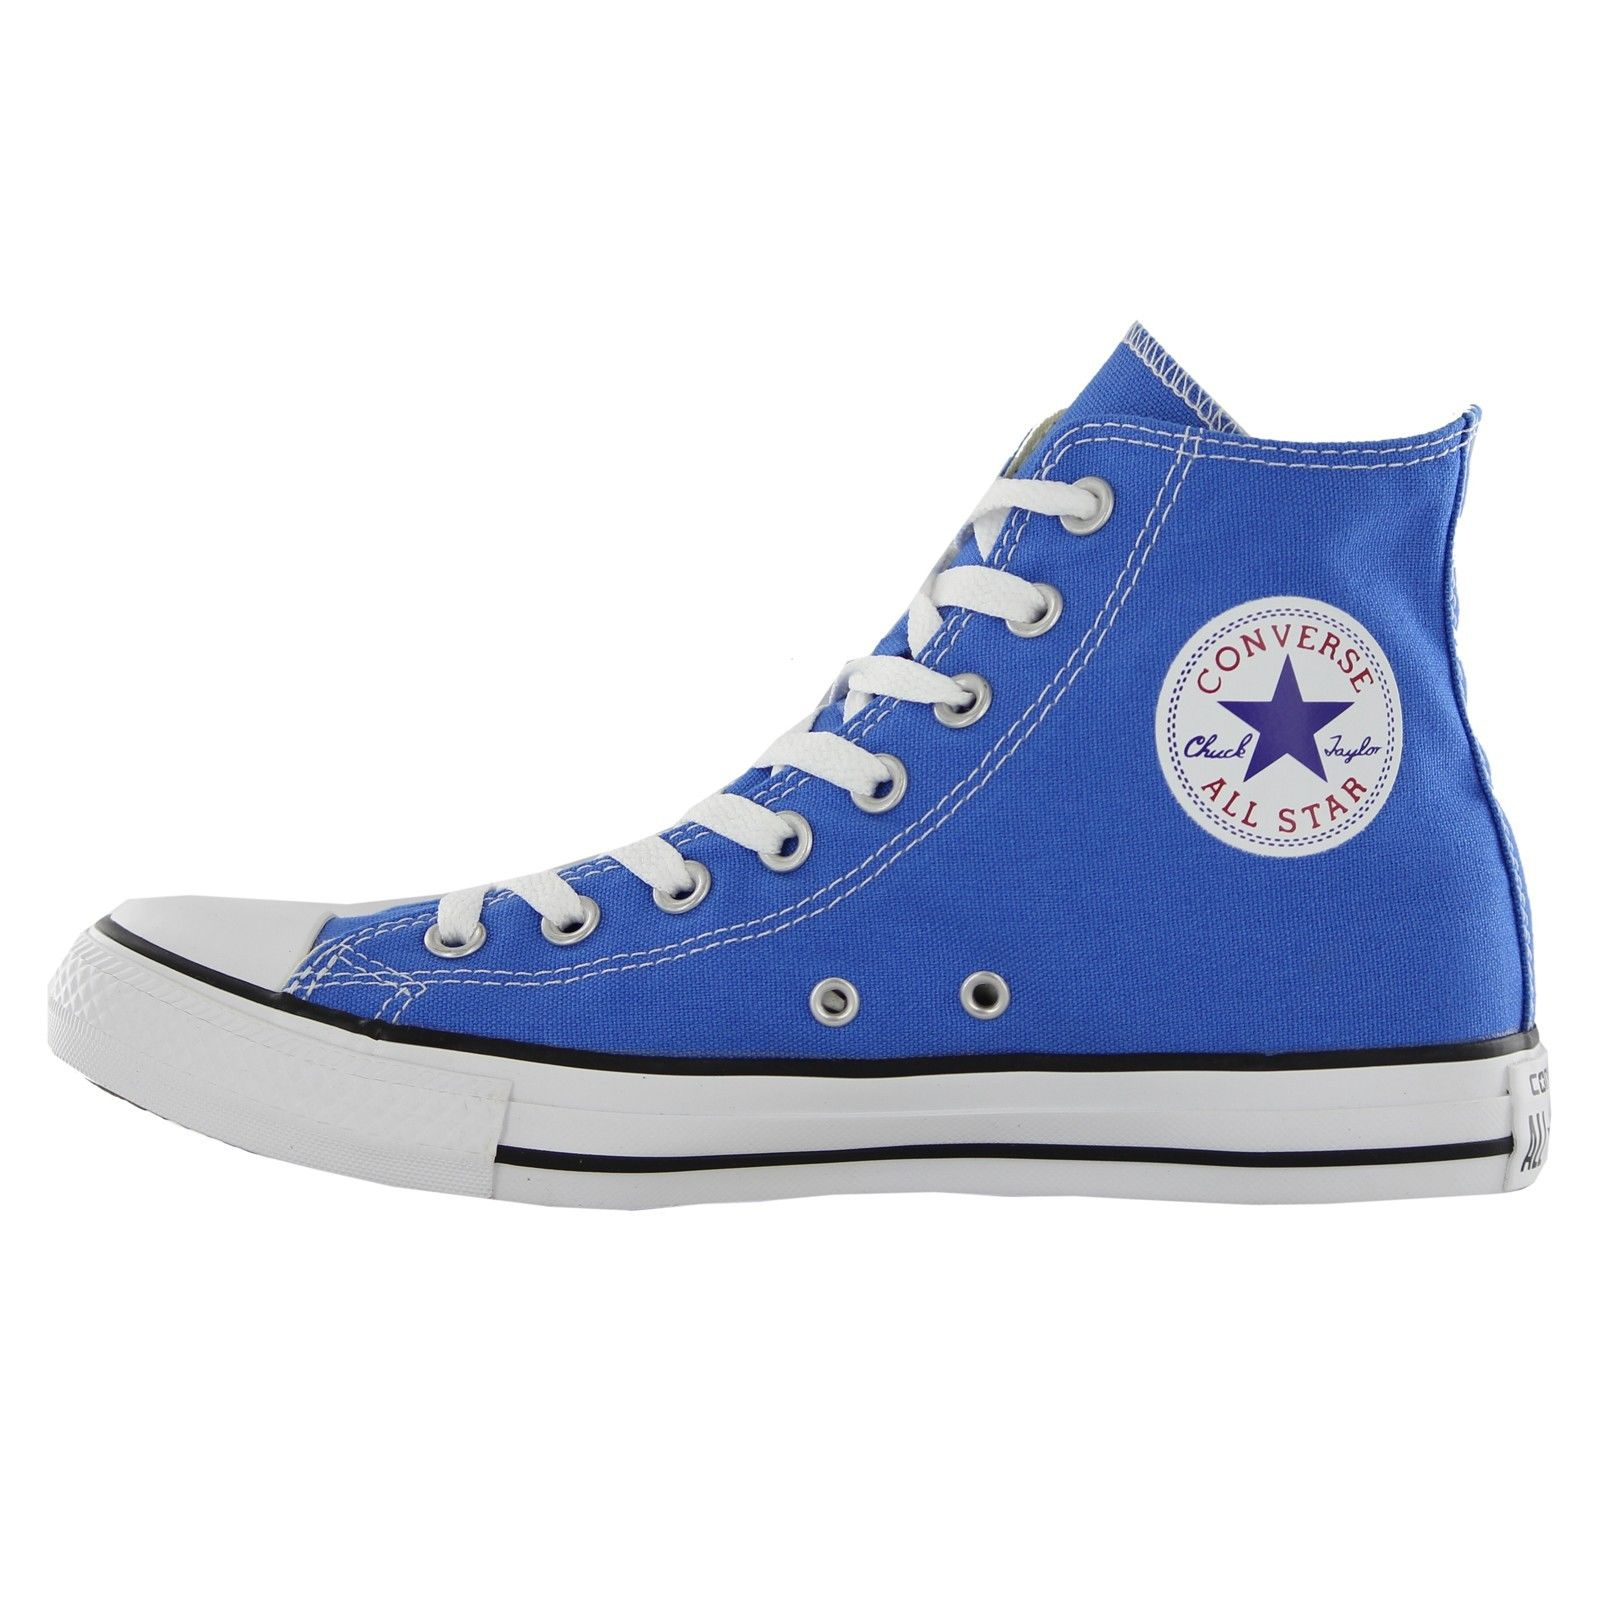 SCARPE SNEAKERS ALTE UNISEX CONVERSE CT HI 147129C BLIGHT SAPPHI SHOES TELA NEW